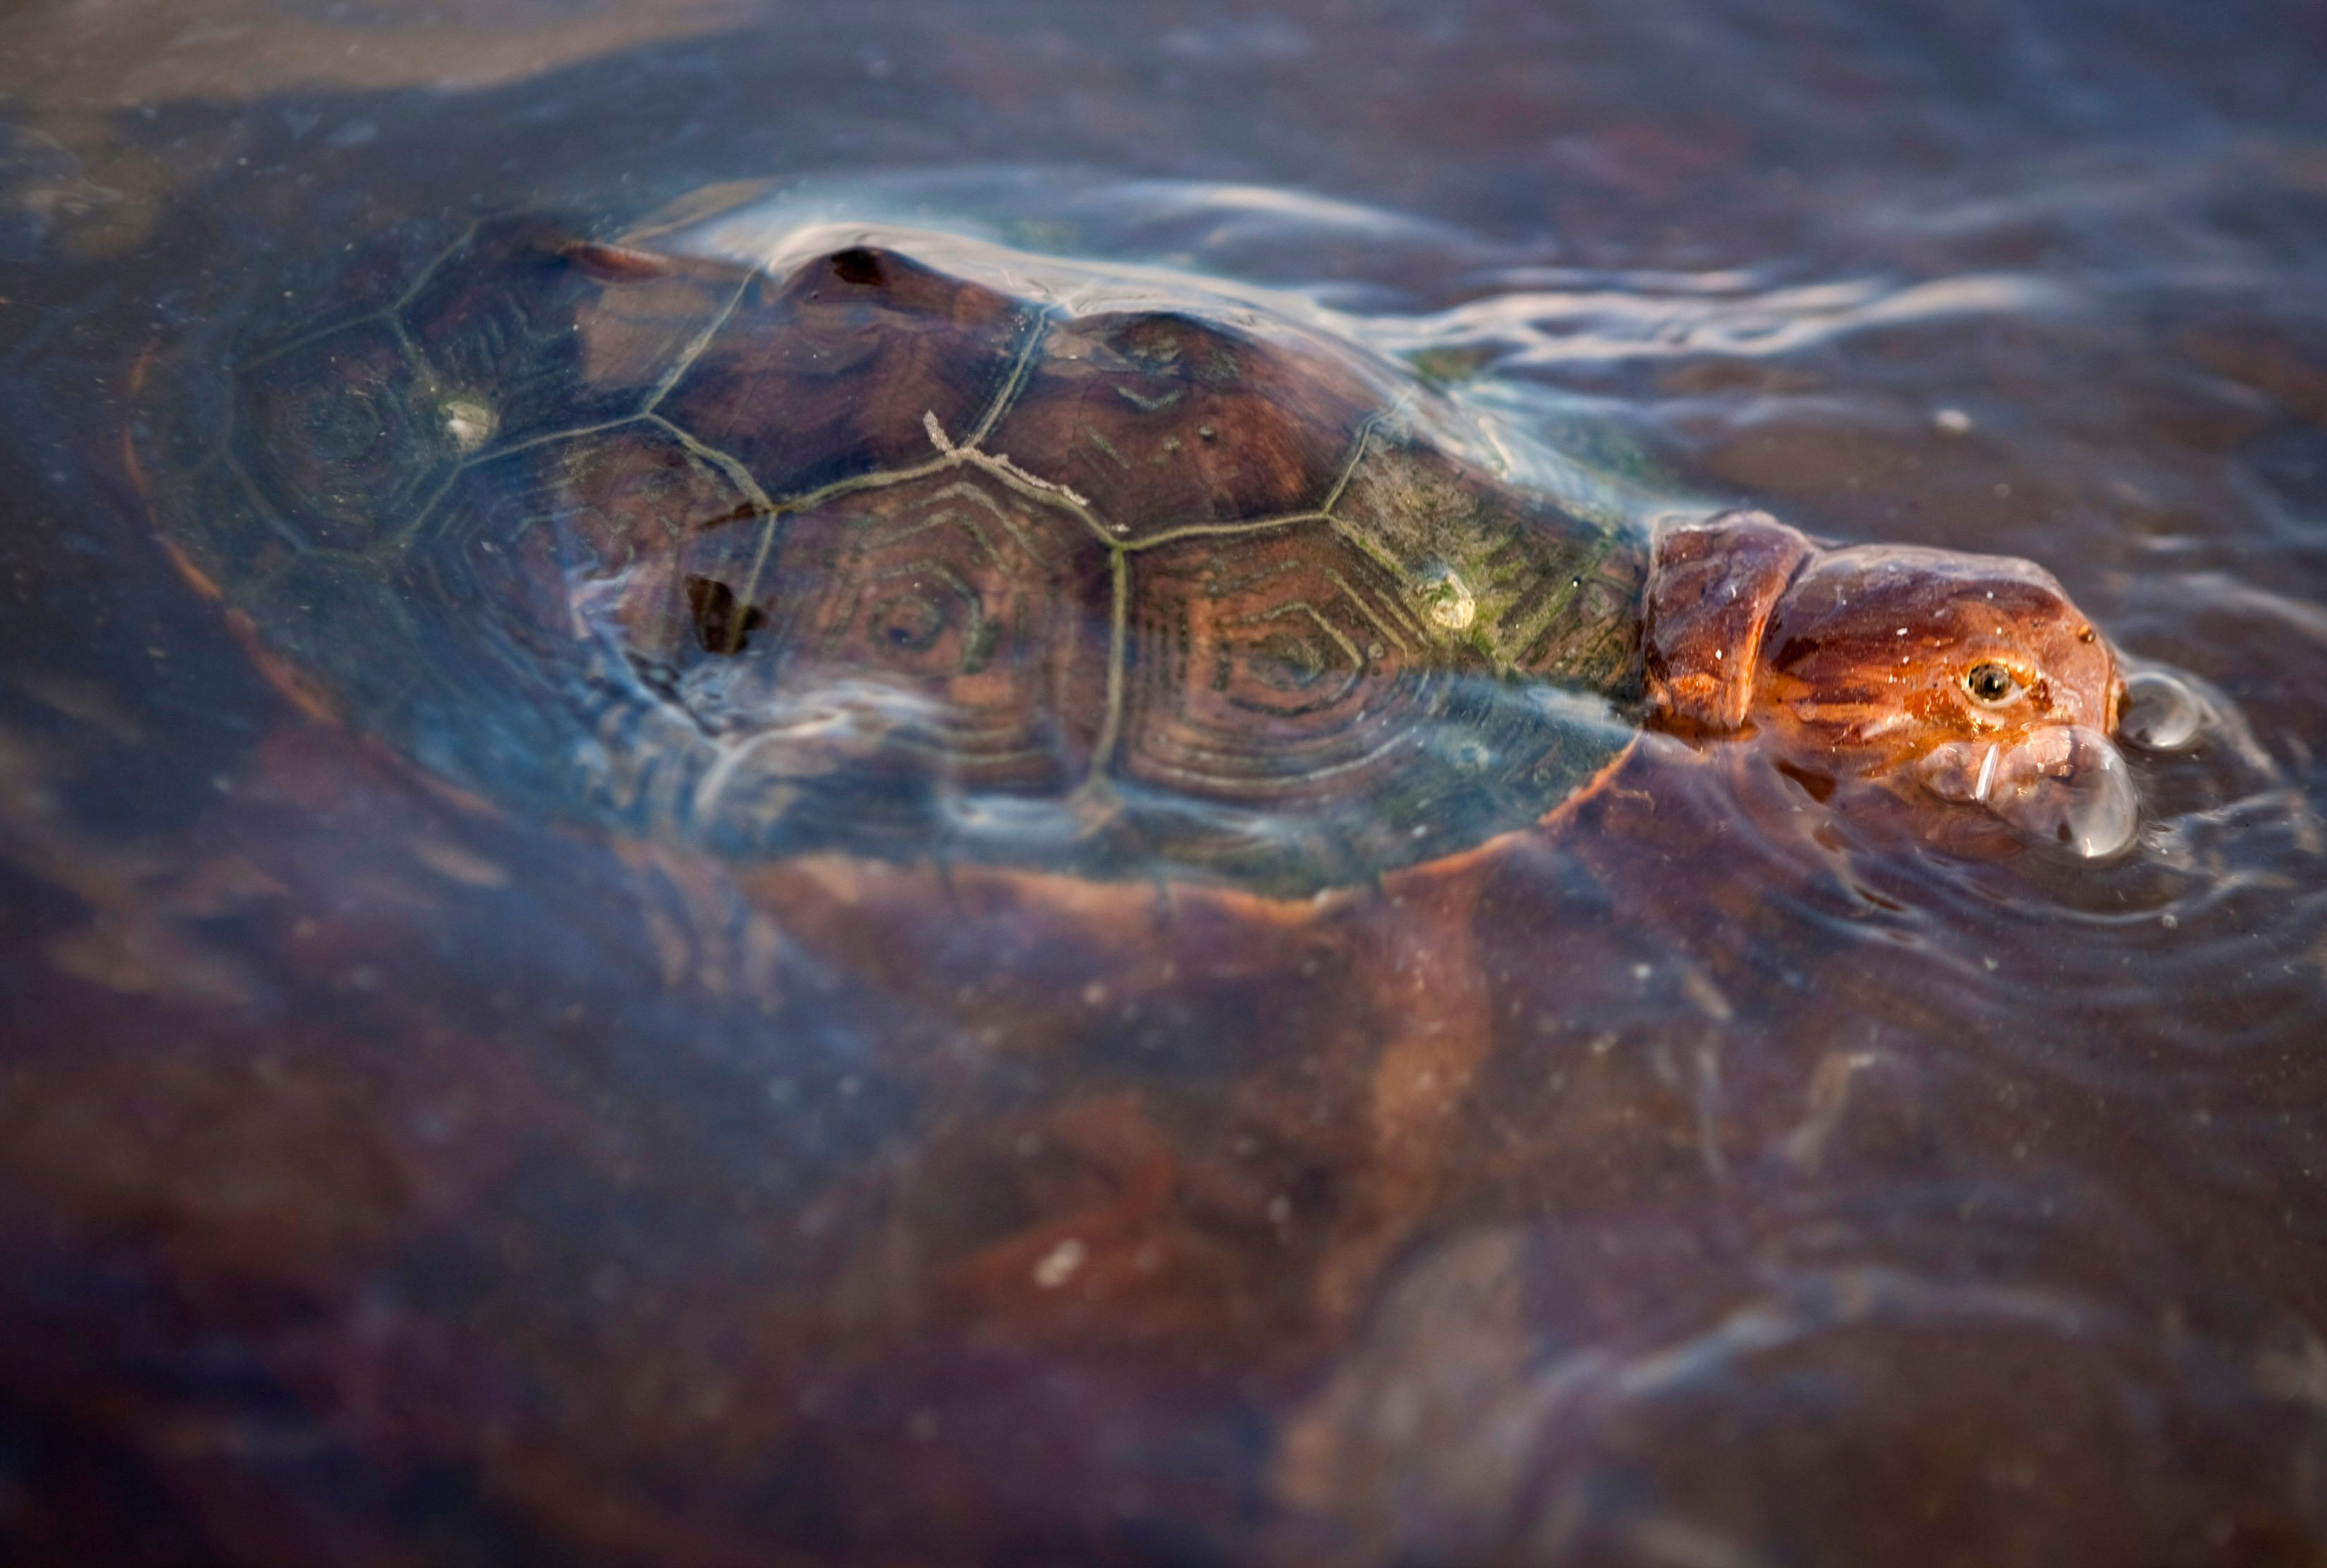 A turtle swims through  oil-covered water after the Deepwater Horizon spill disaster